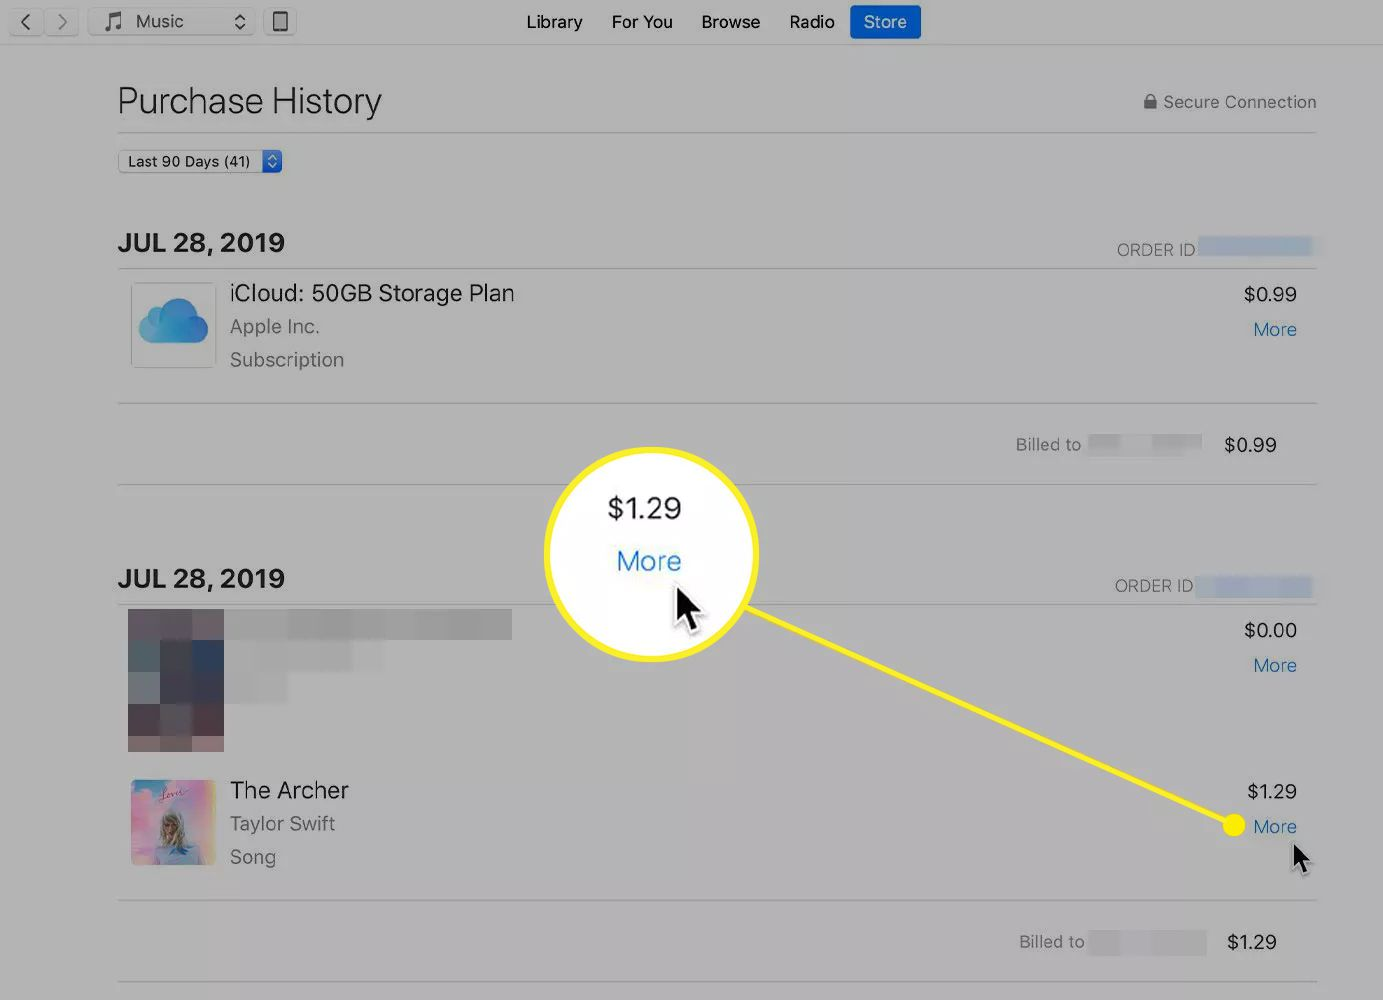 A song in iTunes Purchase History with the More button highlighted